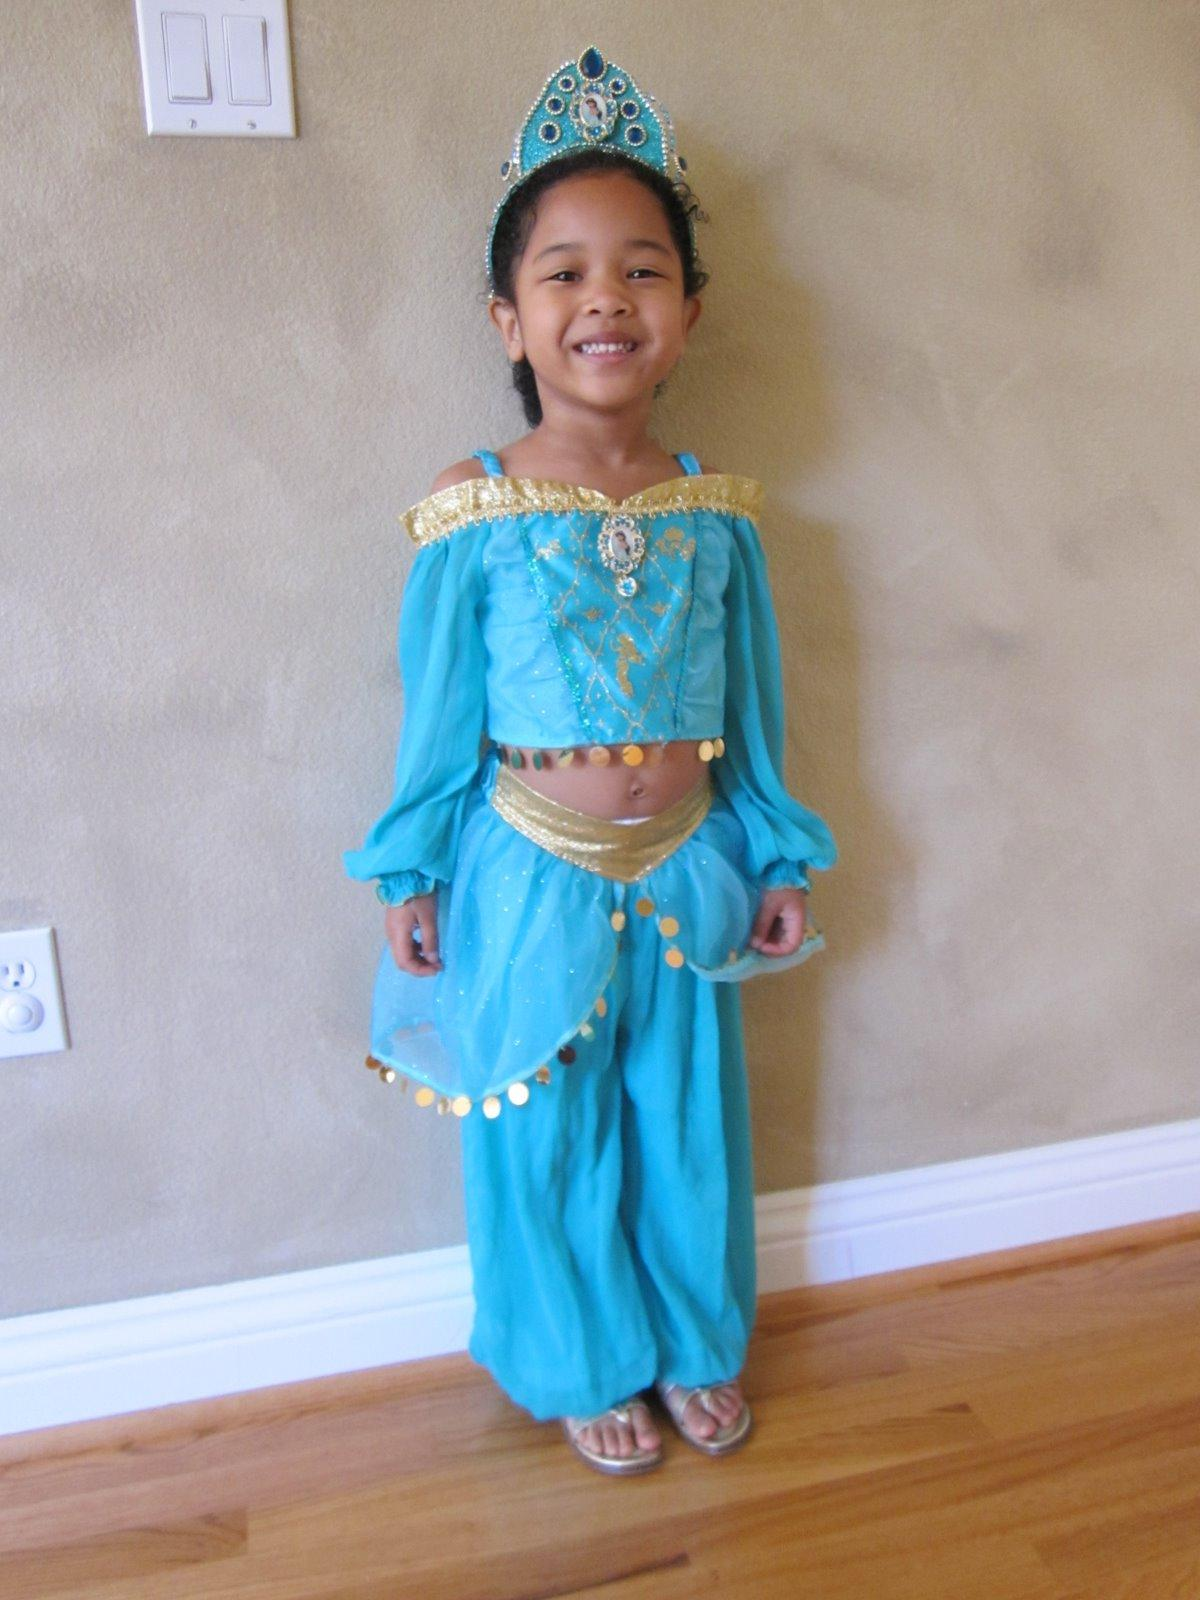 Dani planned to dress up as Princess Jasmine but decided to change because